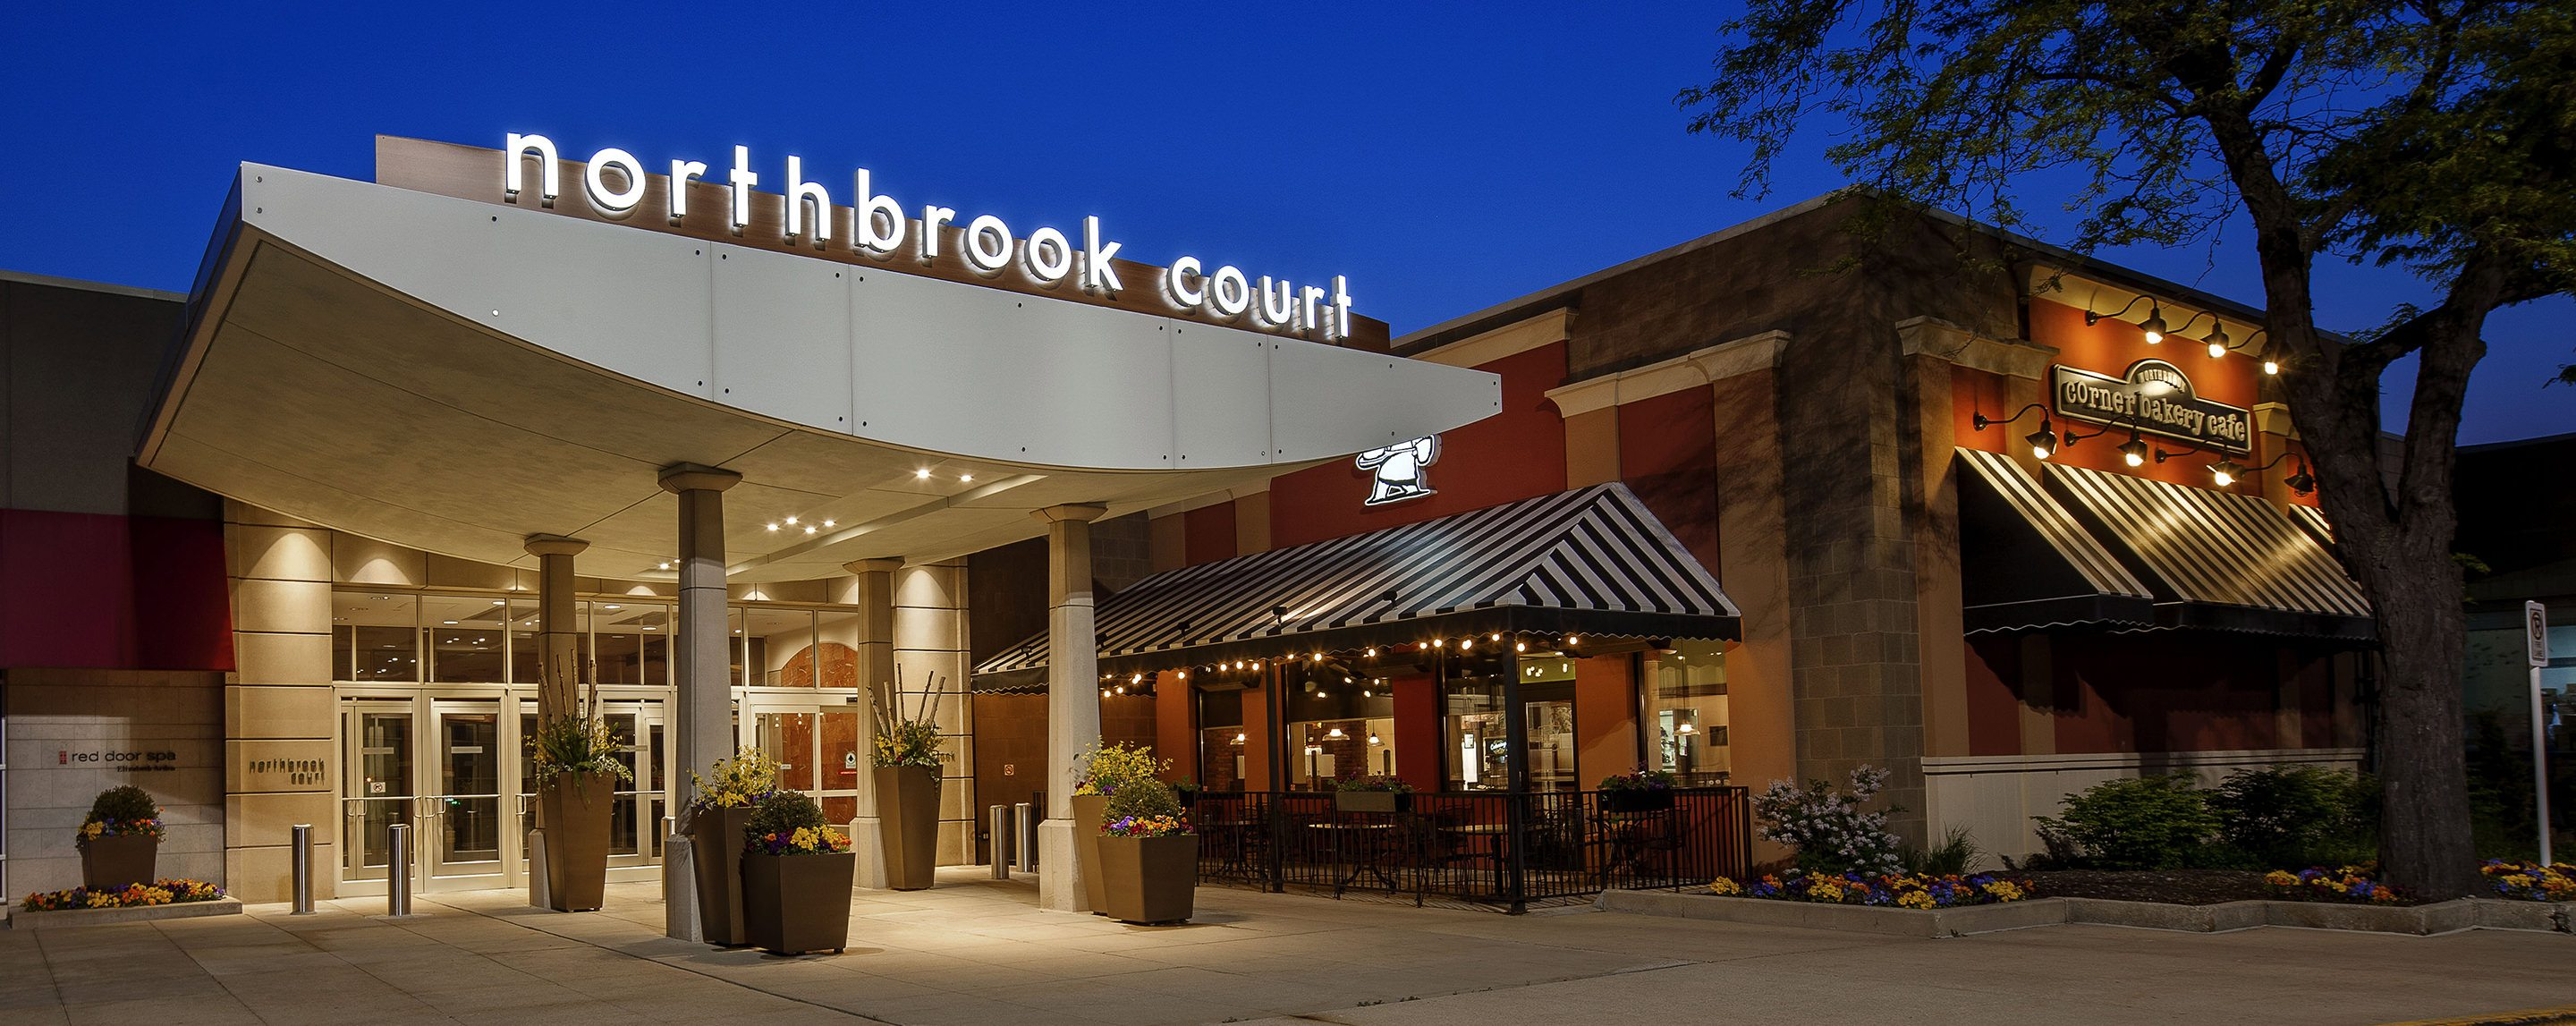 The sign to the Northbrook Court is lit up outside of the Corner Bakery Cafe store.